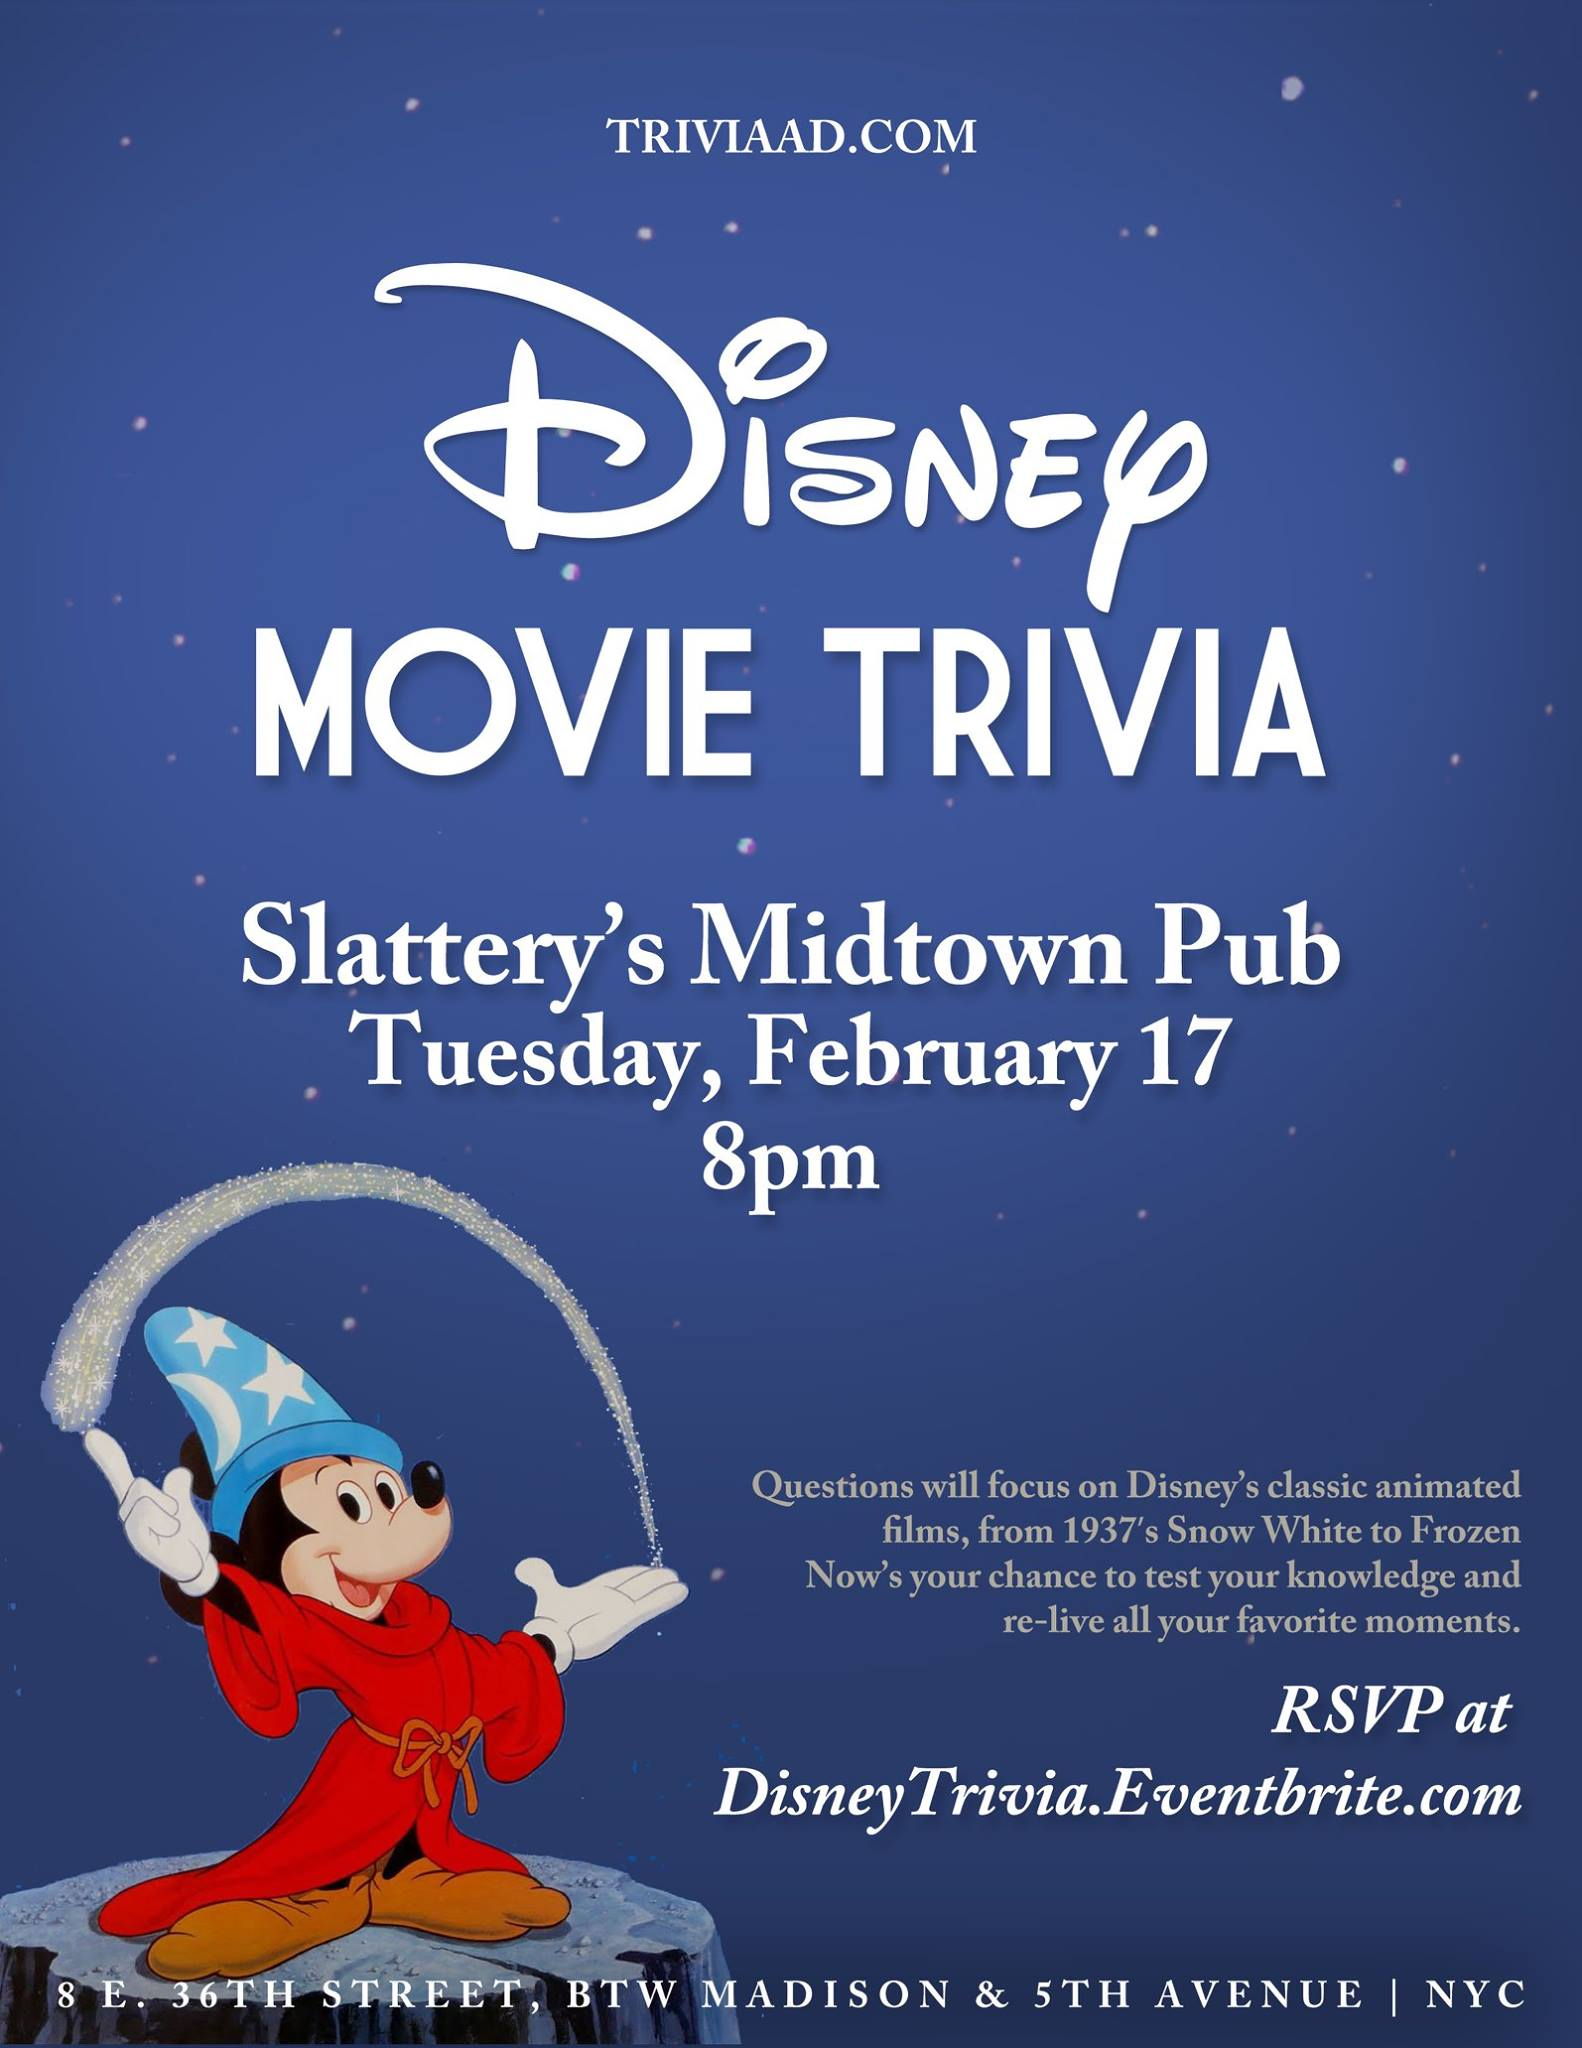 Disney Movie Trivia at Slattery's - MurphGuide: NYC Bar Guide